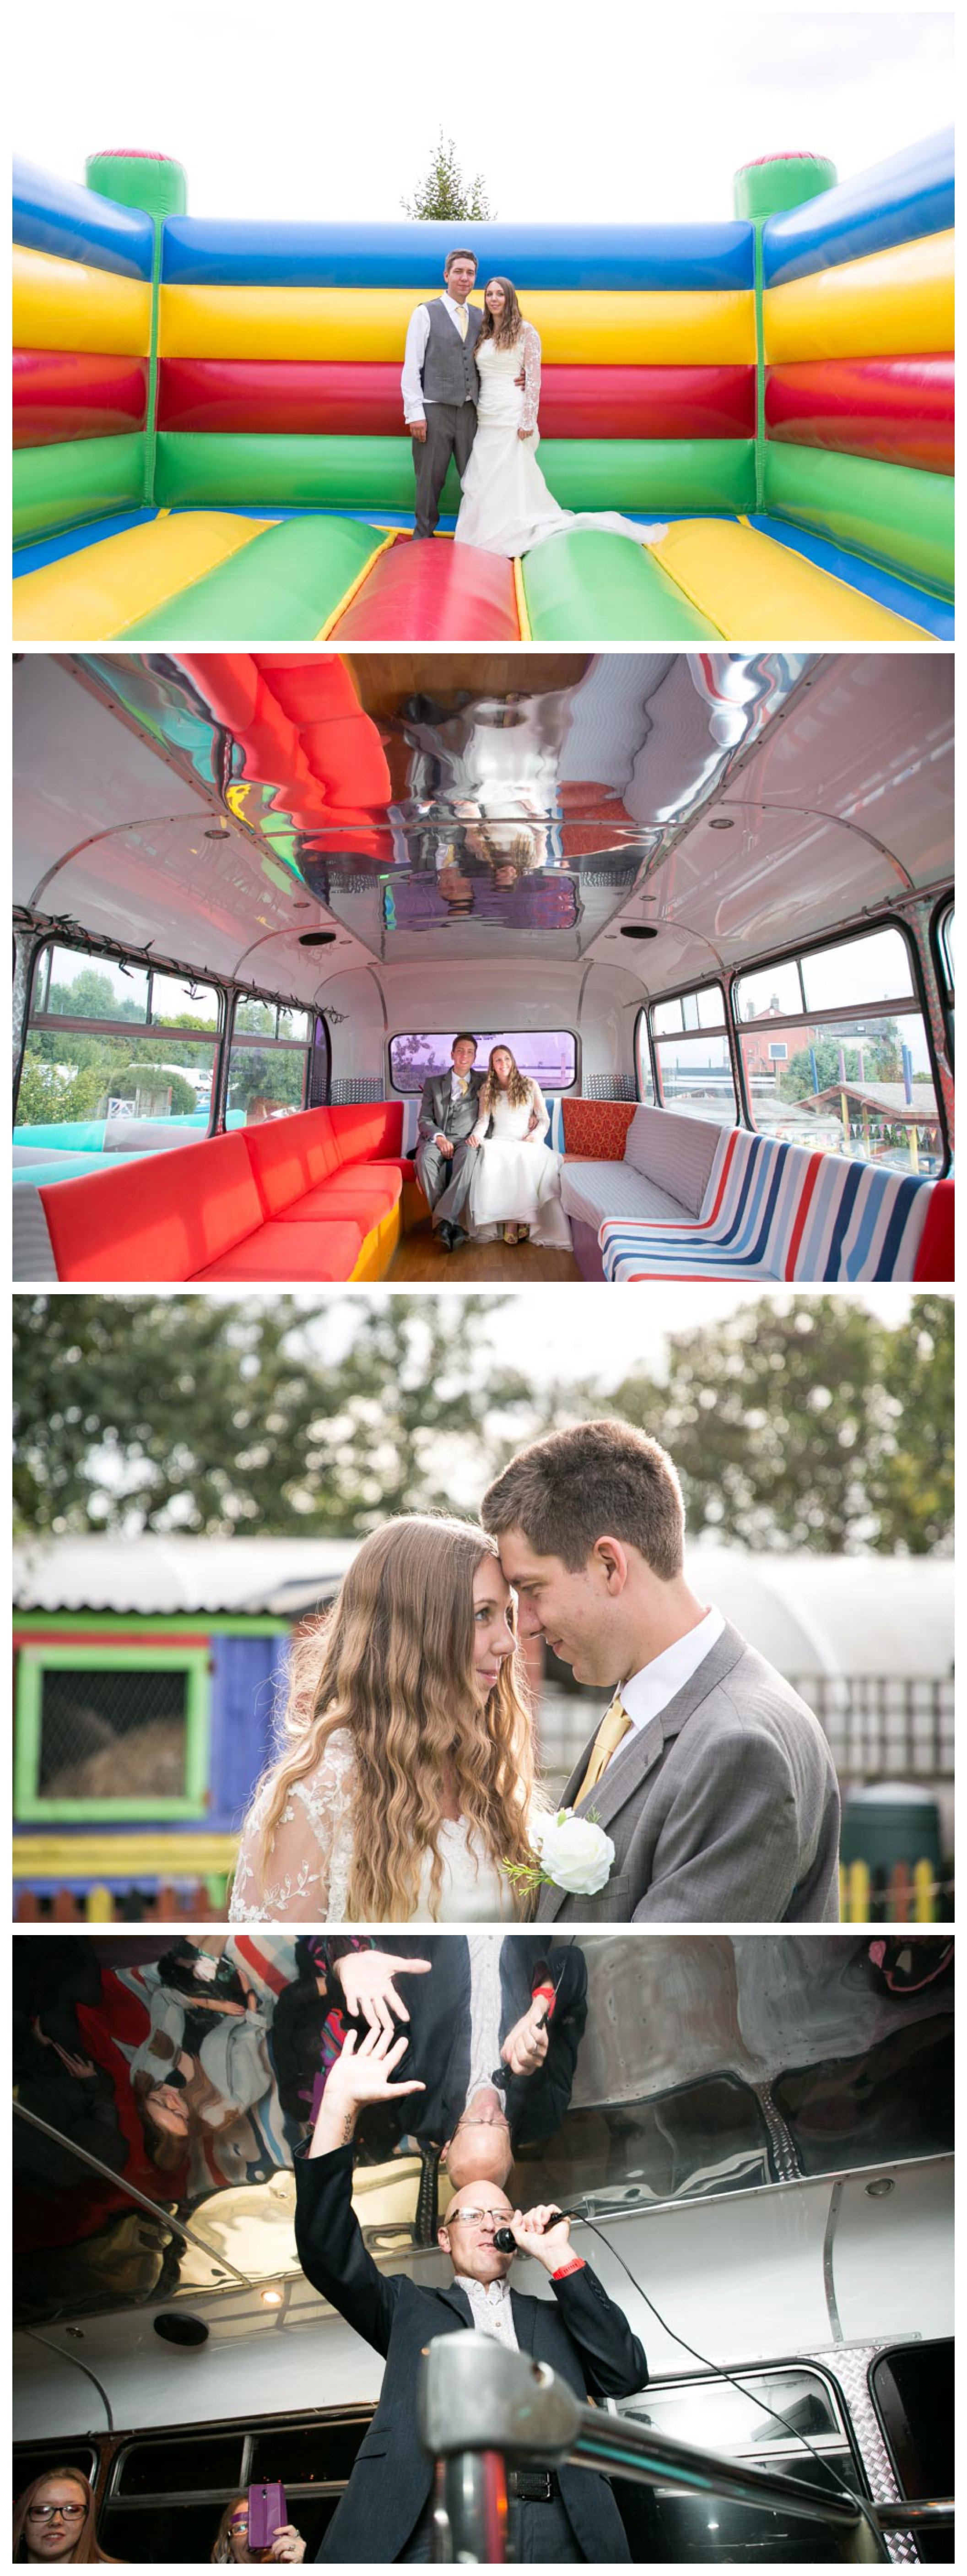 bright and cheerful photos of a wedding at The Missing Sock Cambridge